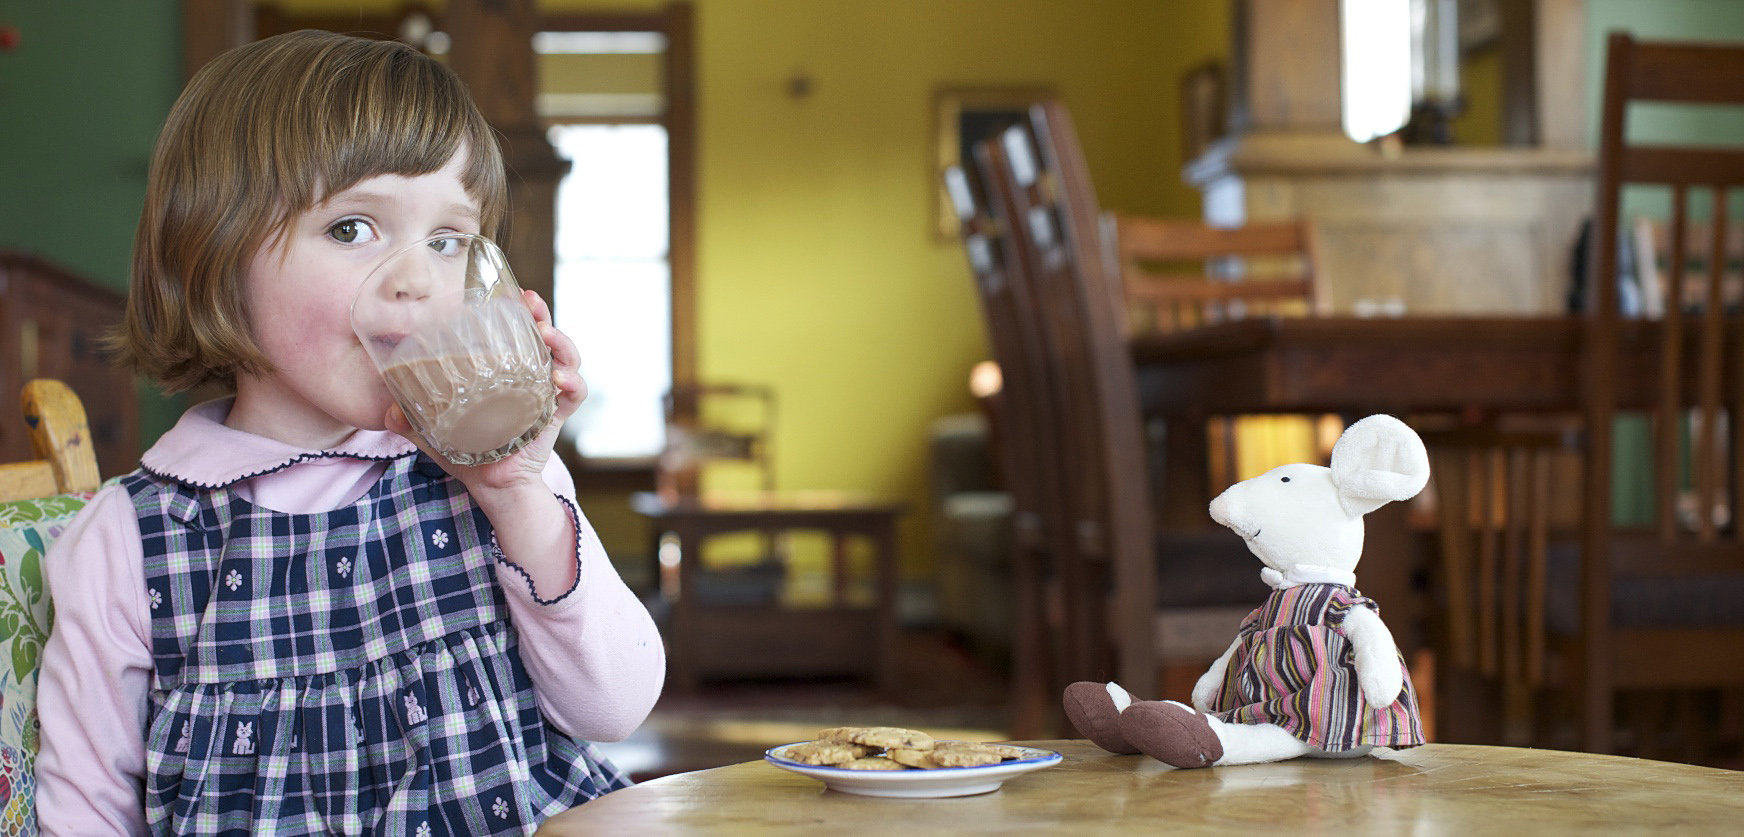 A little girl drinks a glass of chocolate milk with her cute toy mouse and a plate of cookies on the table in front of her.